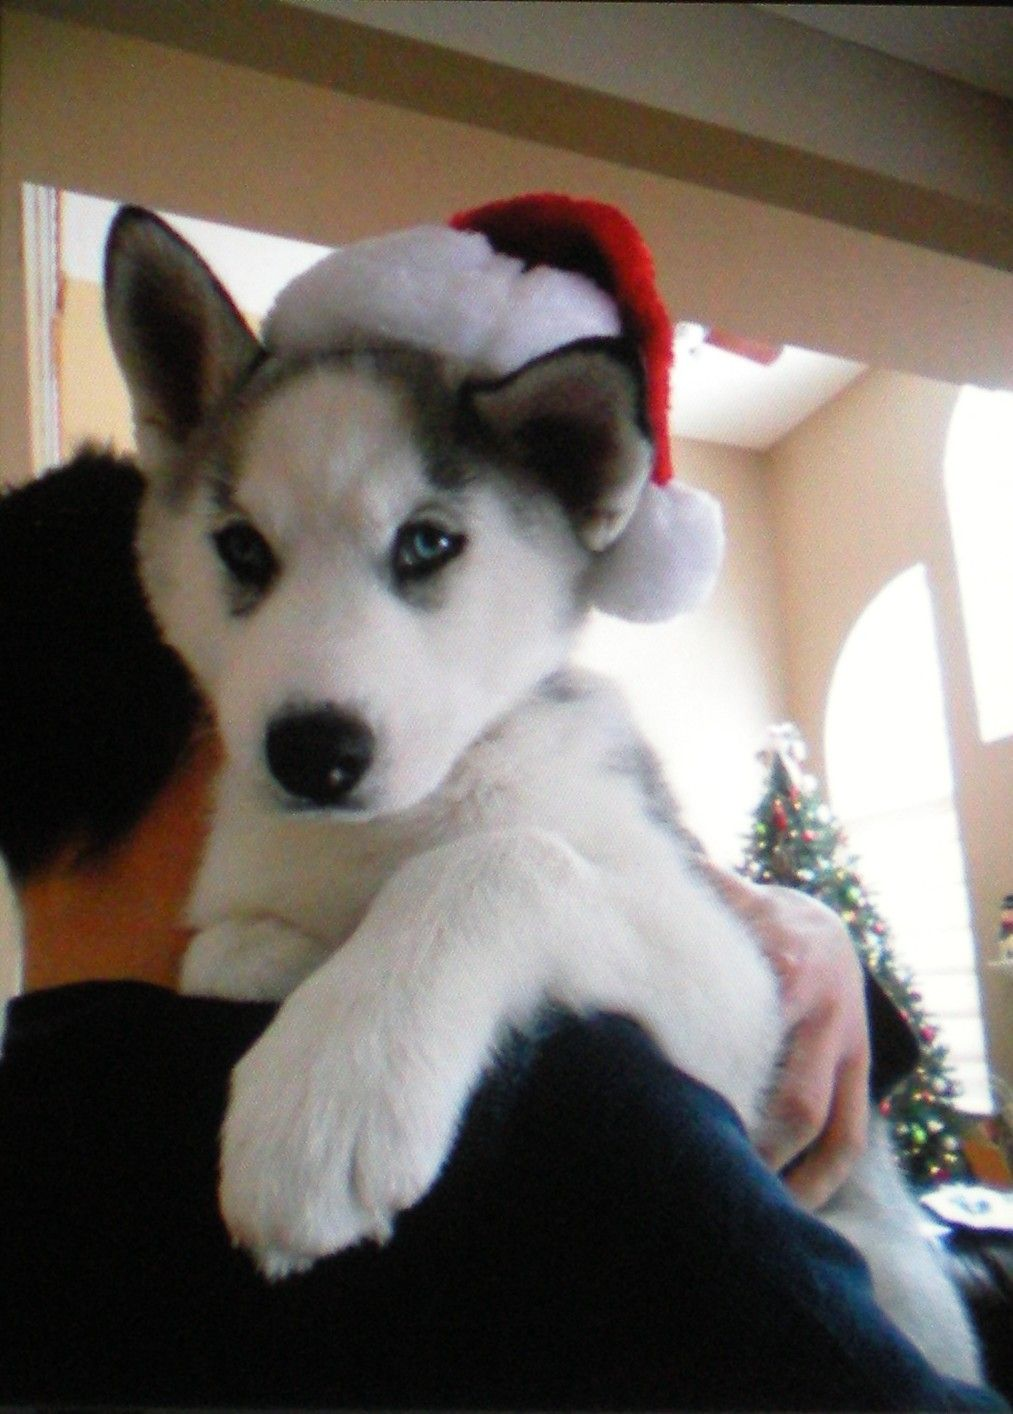 Husky Christmas Puppy.The Best Free Kindle Books Dogs And Puppies Dogs